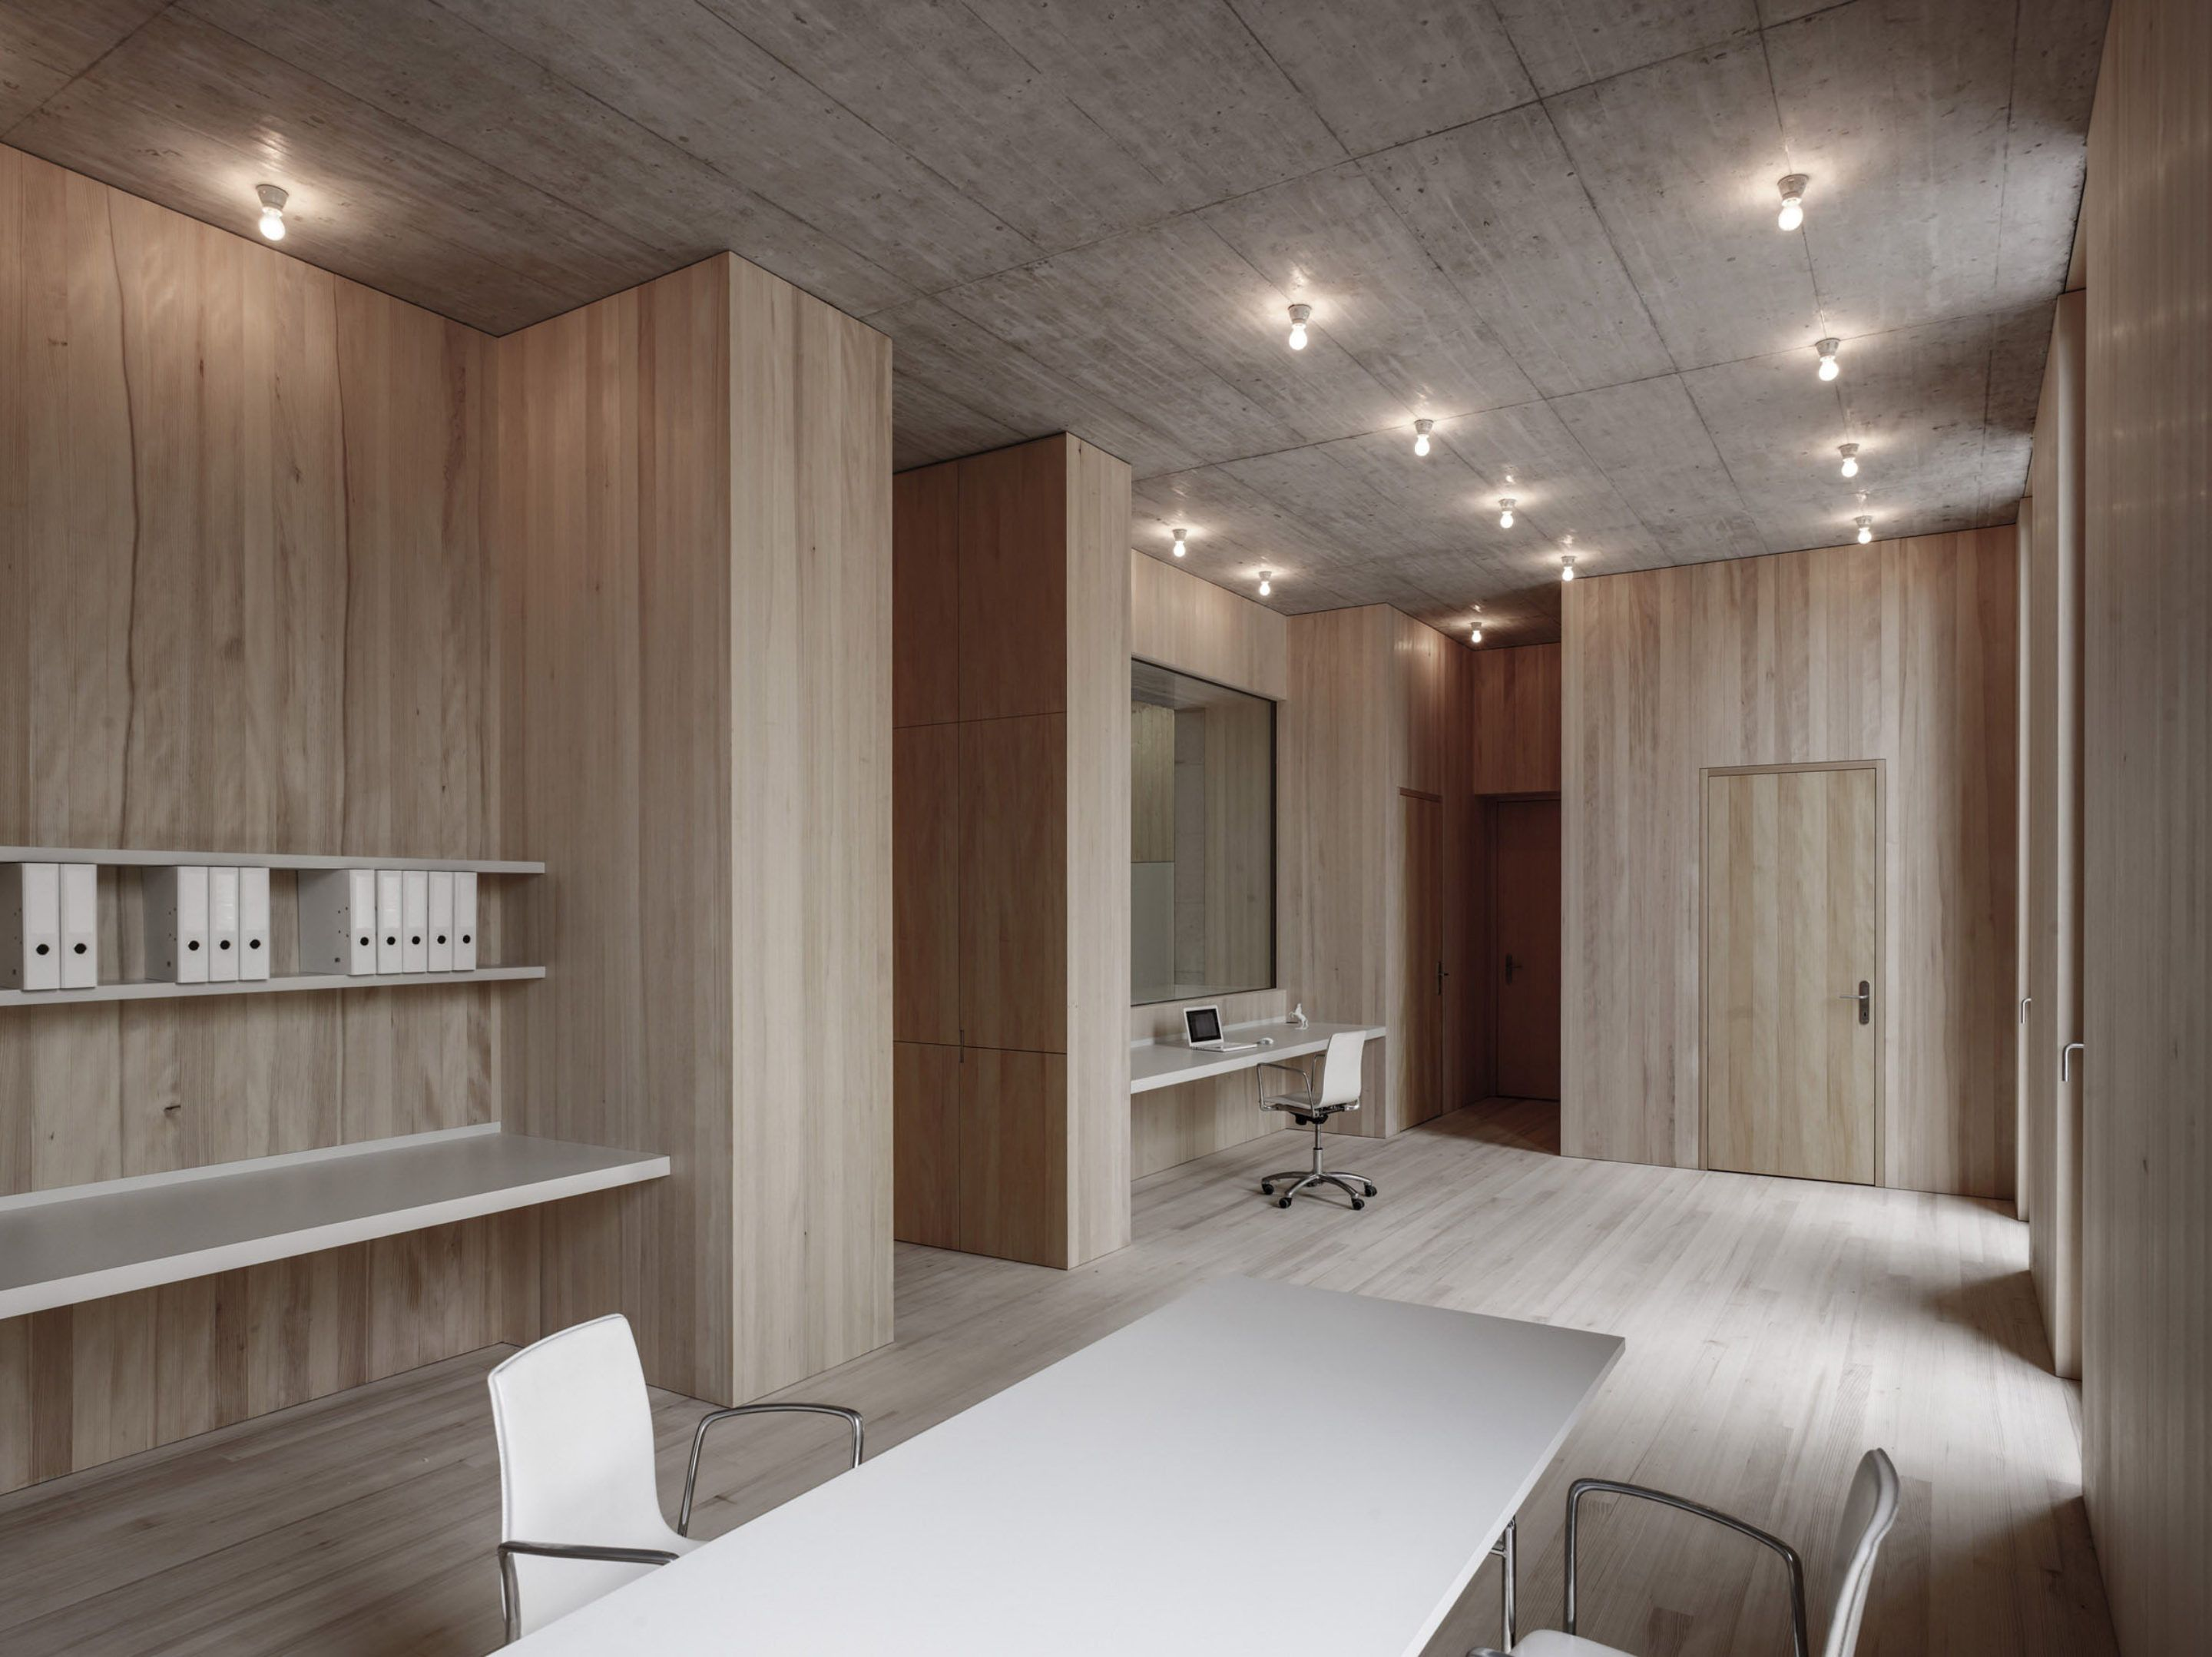 IGNANT-Architecture-Marte.Marte.-Architects-Veterinary-Clinic-6